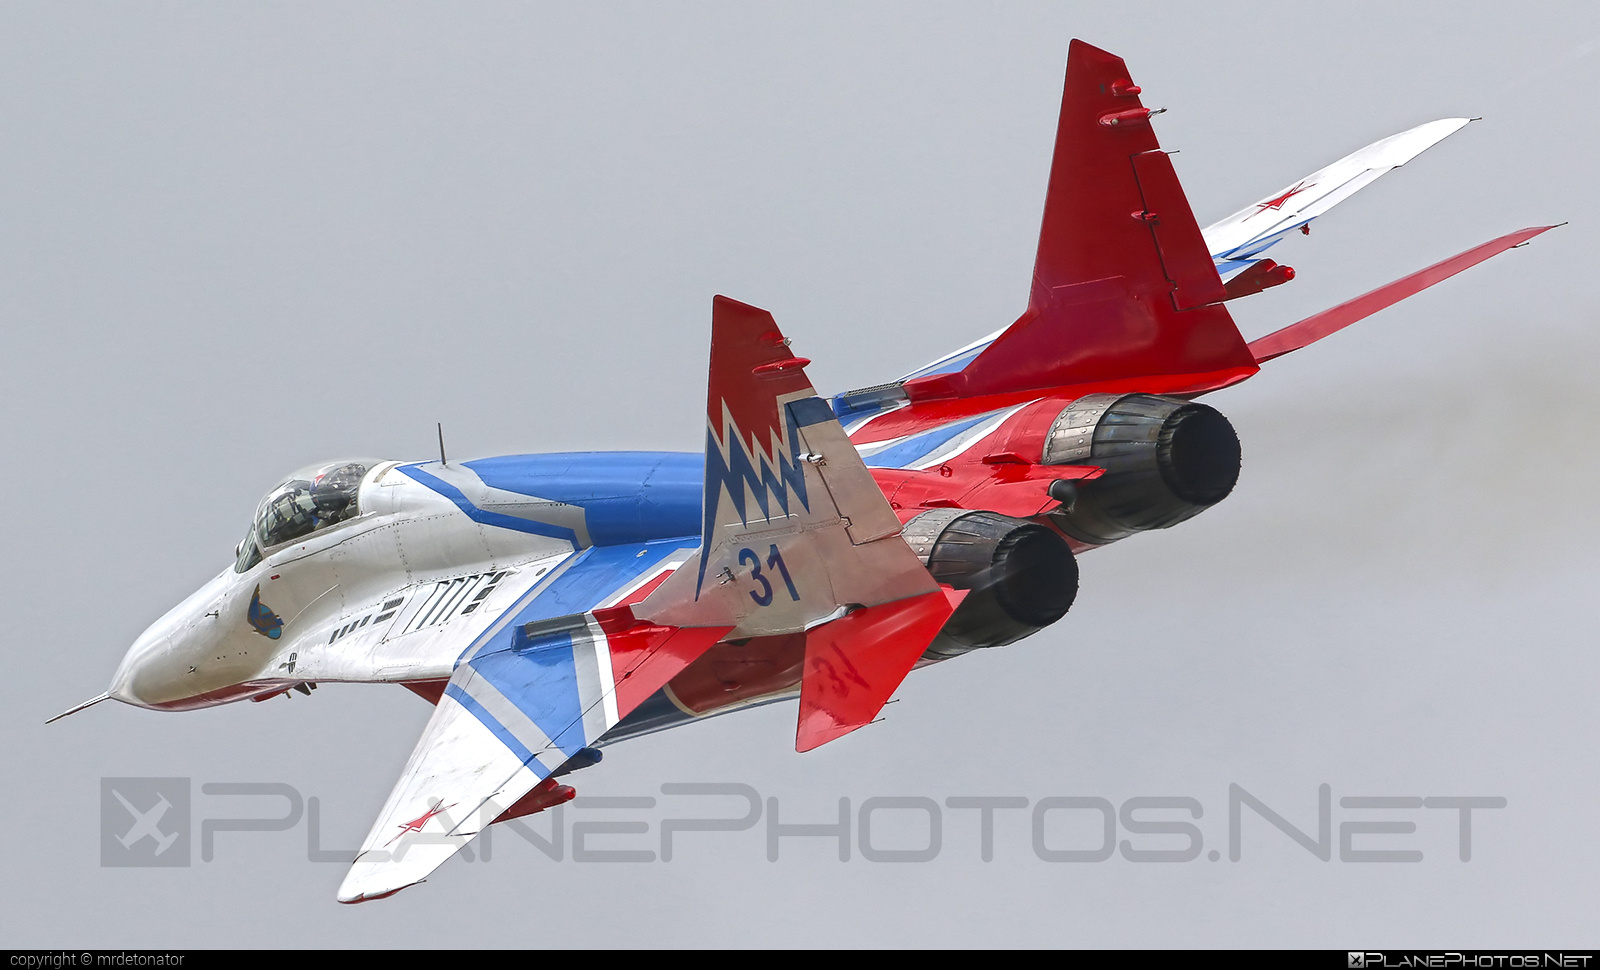 Mikoyan-Gurevich MiG-29 - 31 operated by Voyenno-vozdushnye sily Rossii (Russian Air Force) #mig #mig29 #mikoyangurevich